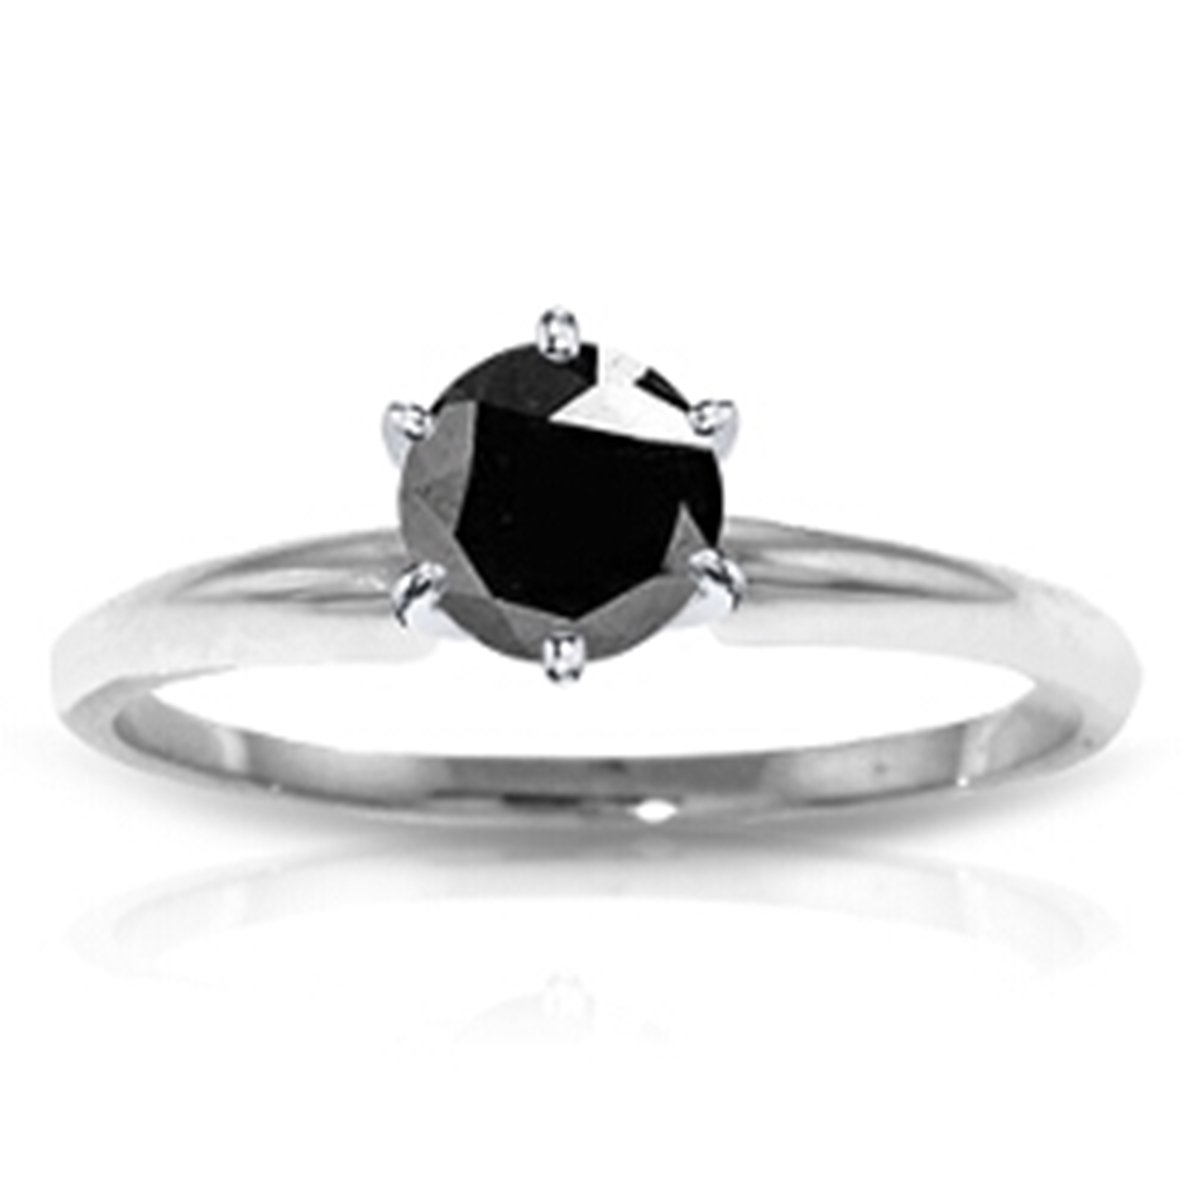 14K Solid White Gold Solitaire Engagement Ring 0.50 Carat Black Diamond 2352-W